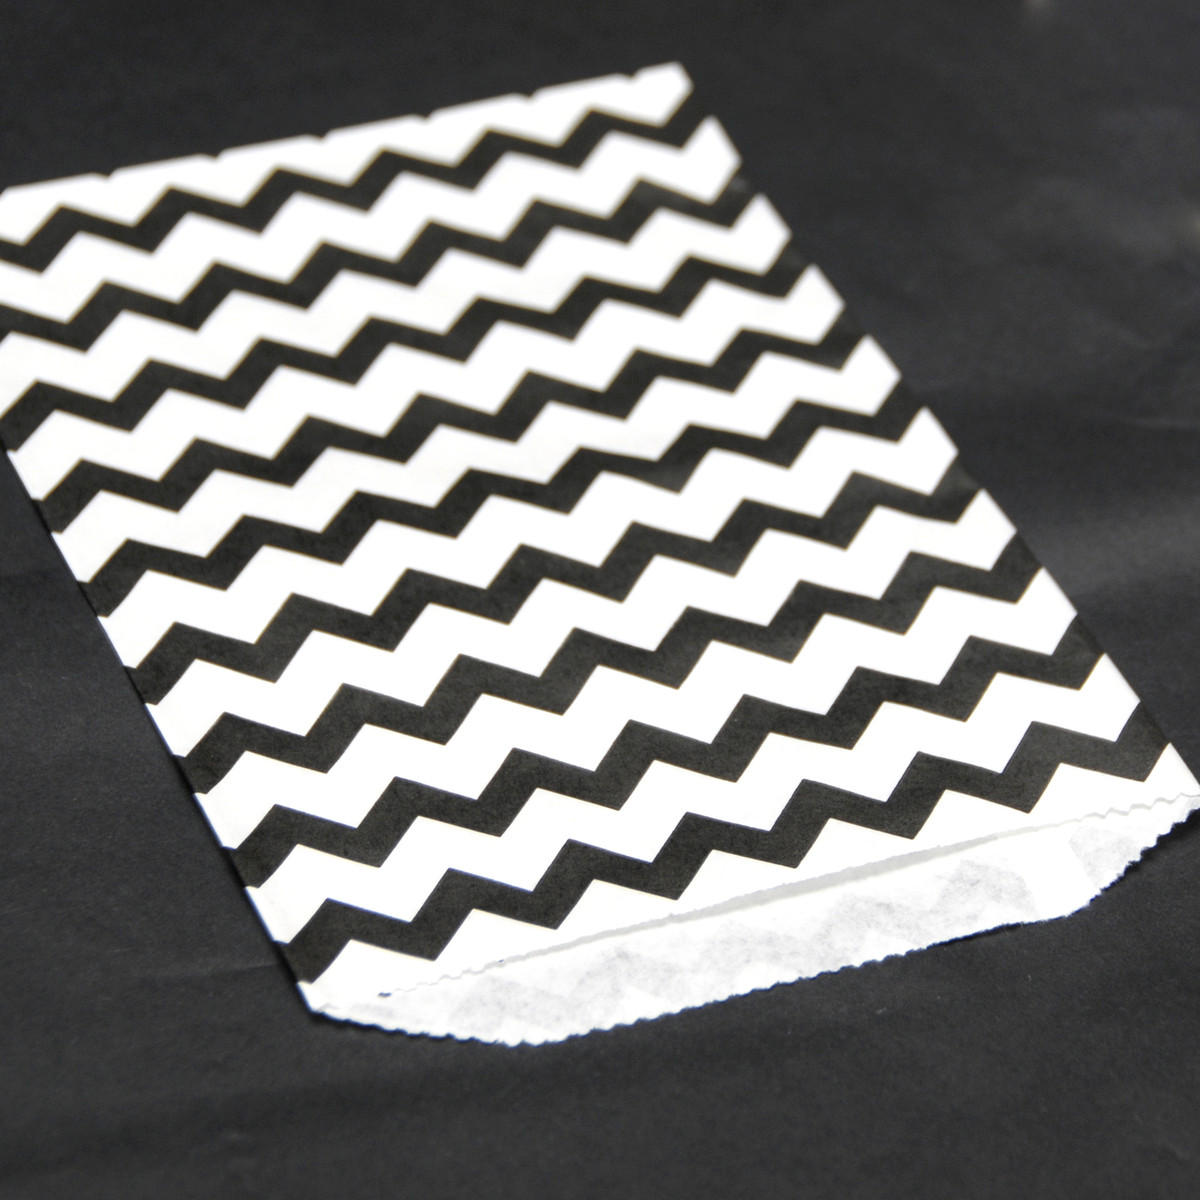 black copy paper Results 1 - 24 of 41  buy black colored paper in packs or in bulk at the paper mill store save money  with rewards & discounts with free shipping available.